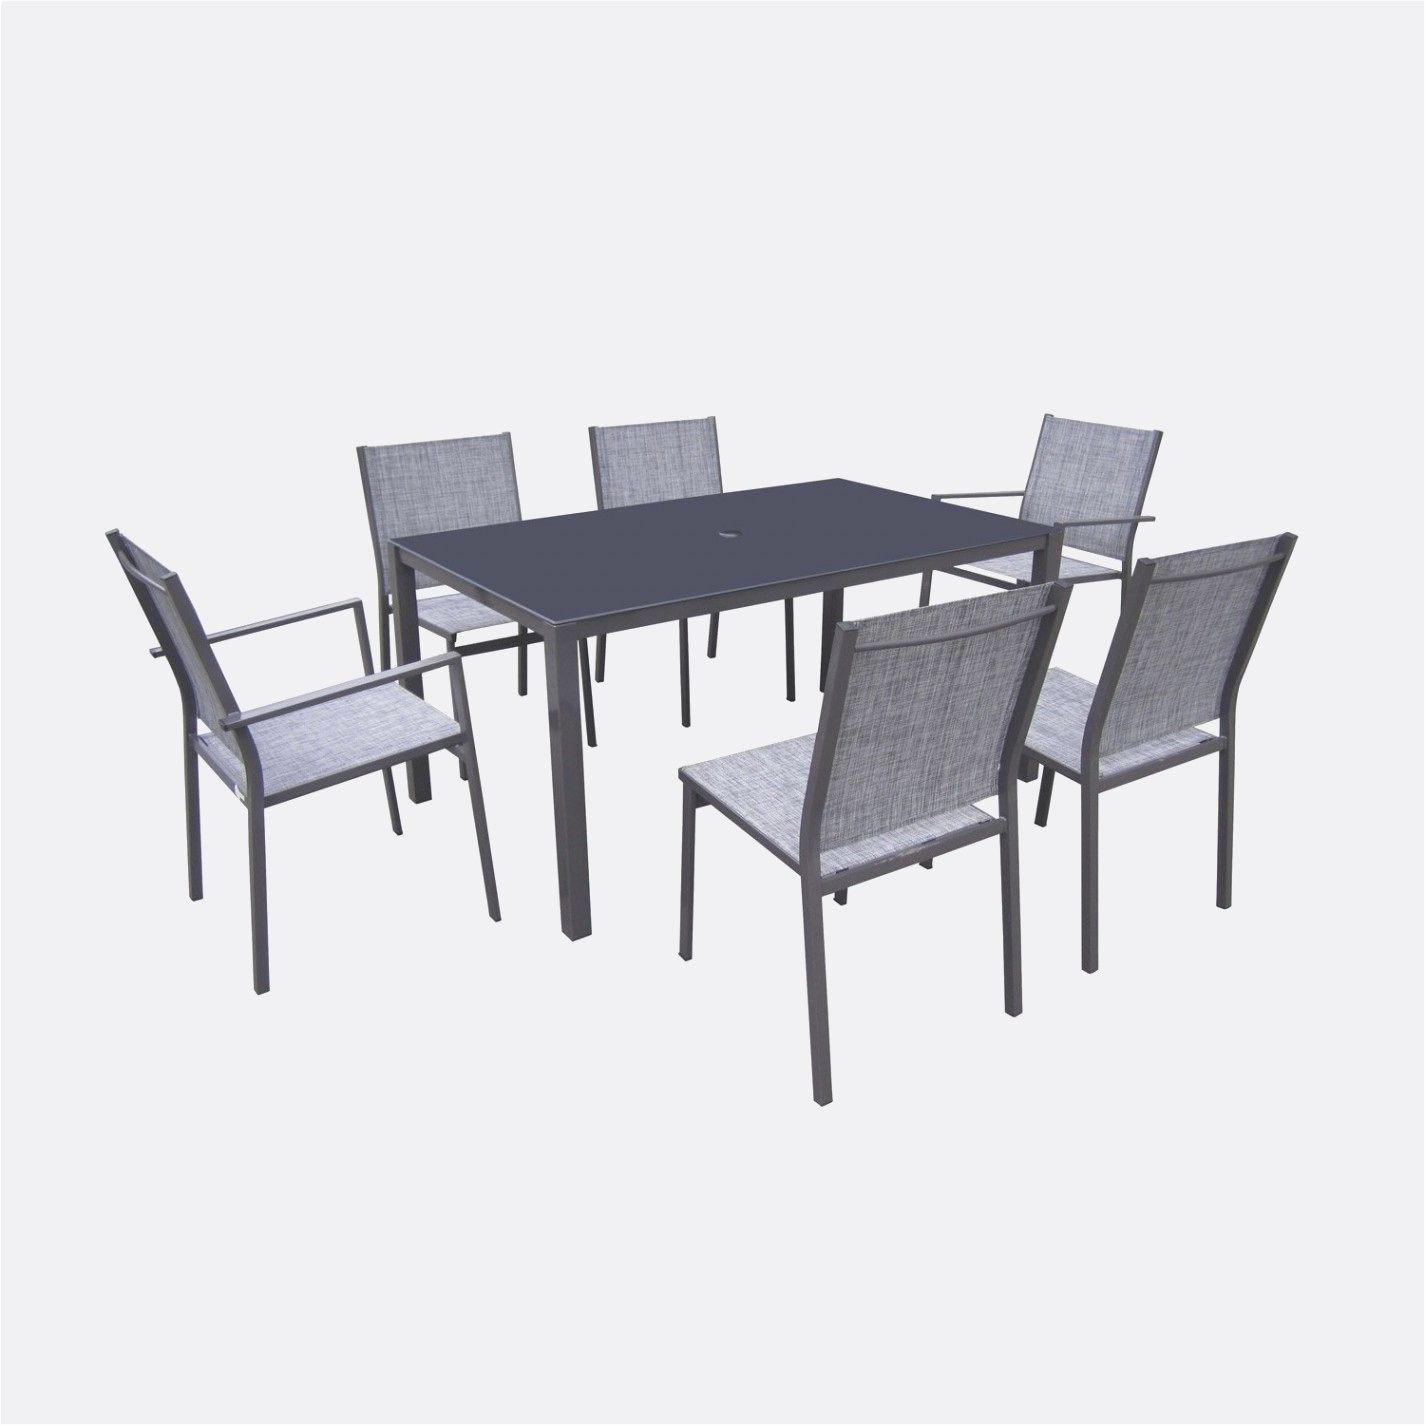 table et chaise de jardin cdiscount photo de table et chaise cdiscount 84 schc2a8me table chaise jardin pas cher of table et chaise de jardin cdiscount